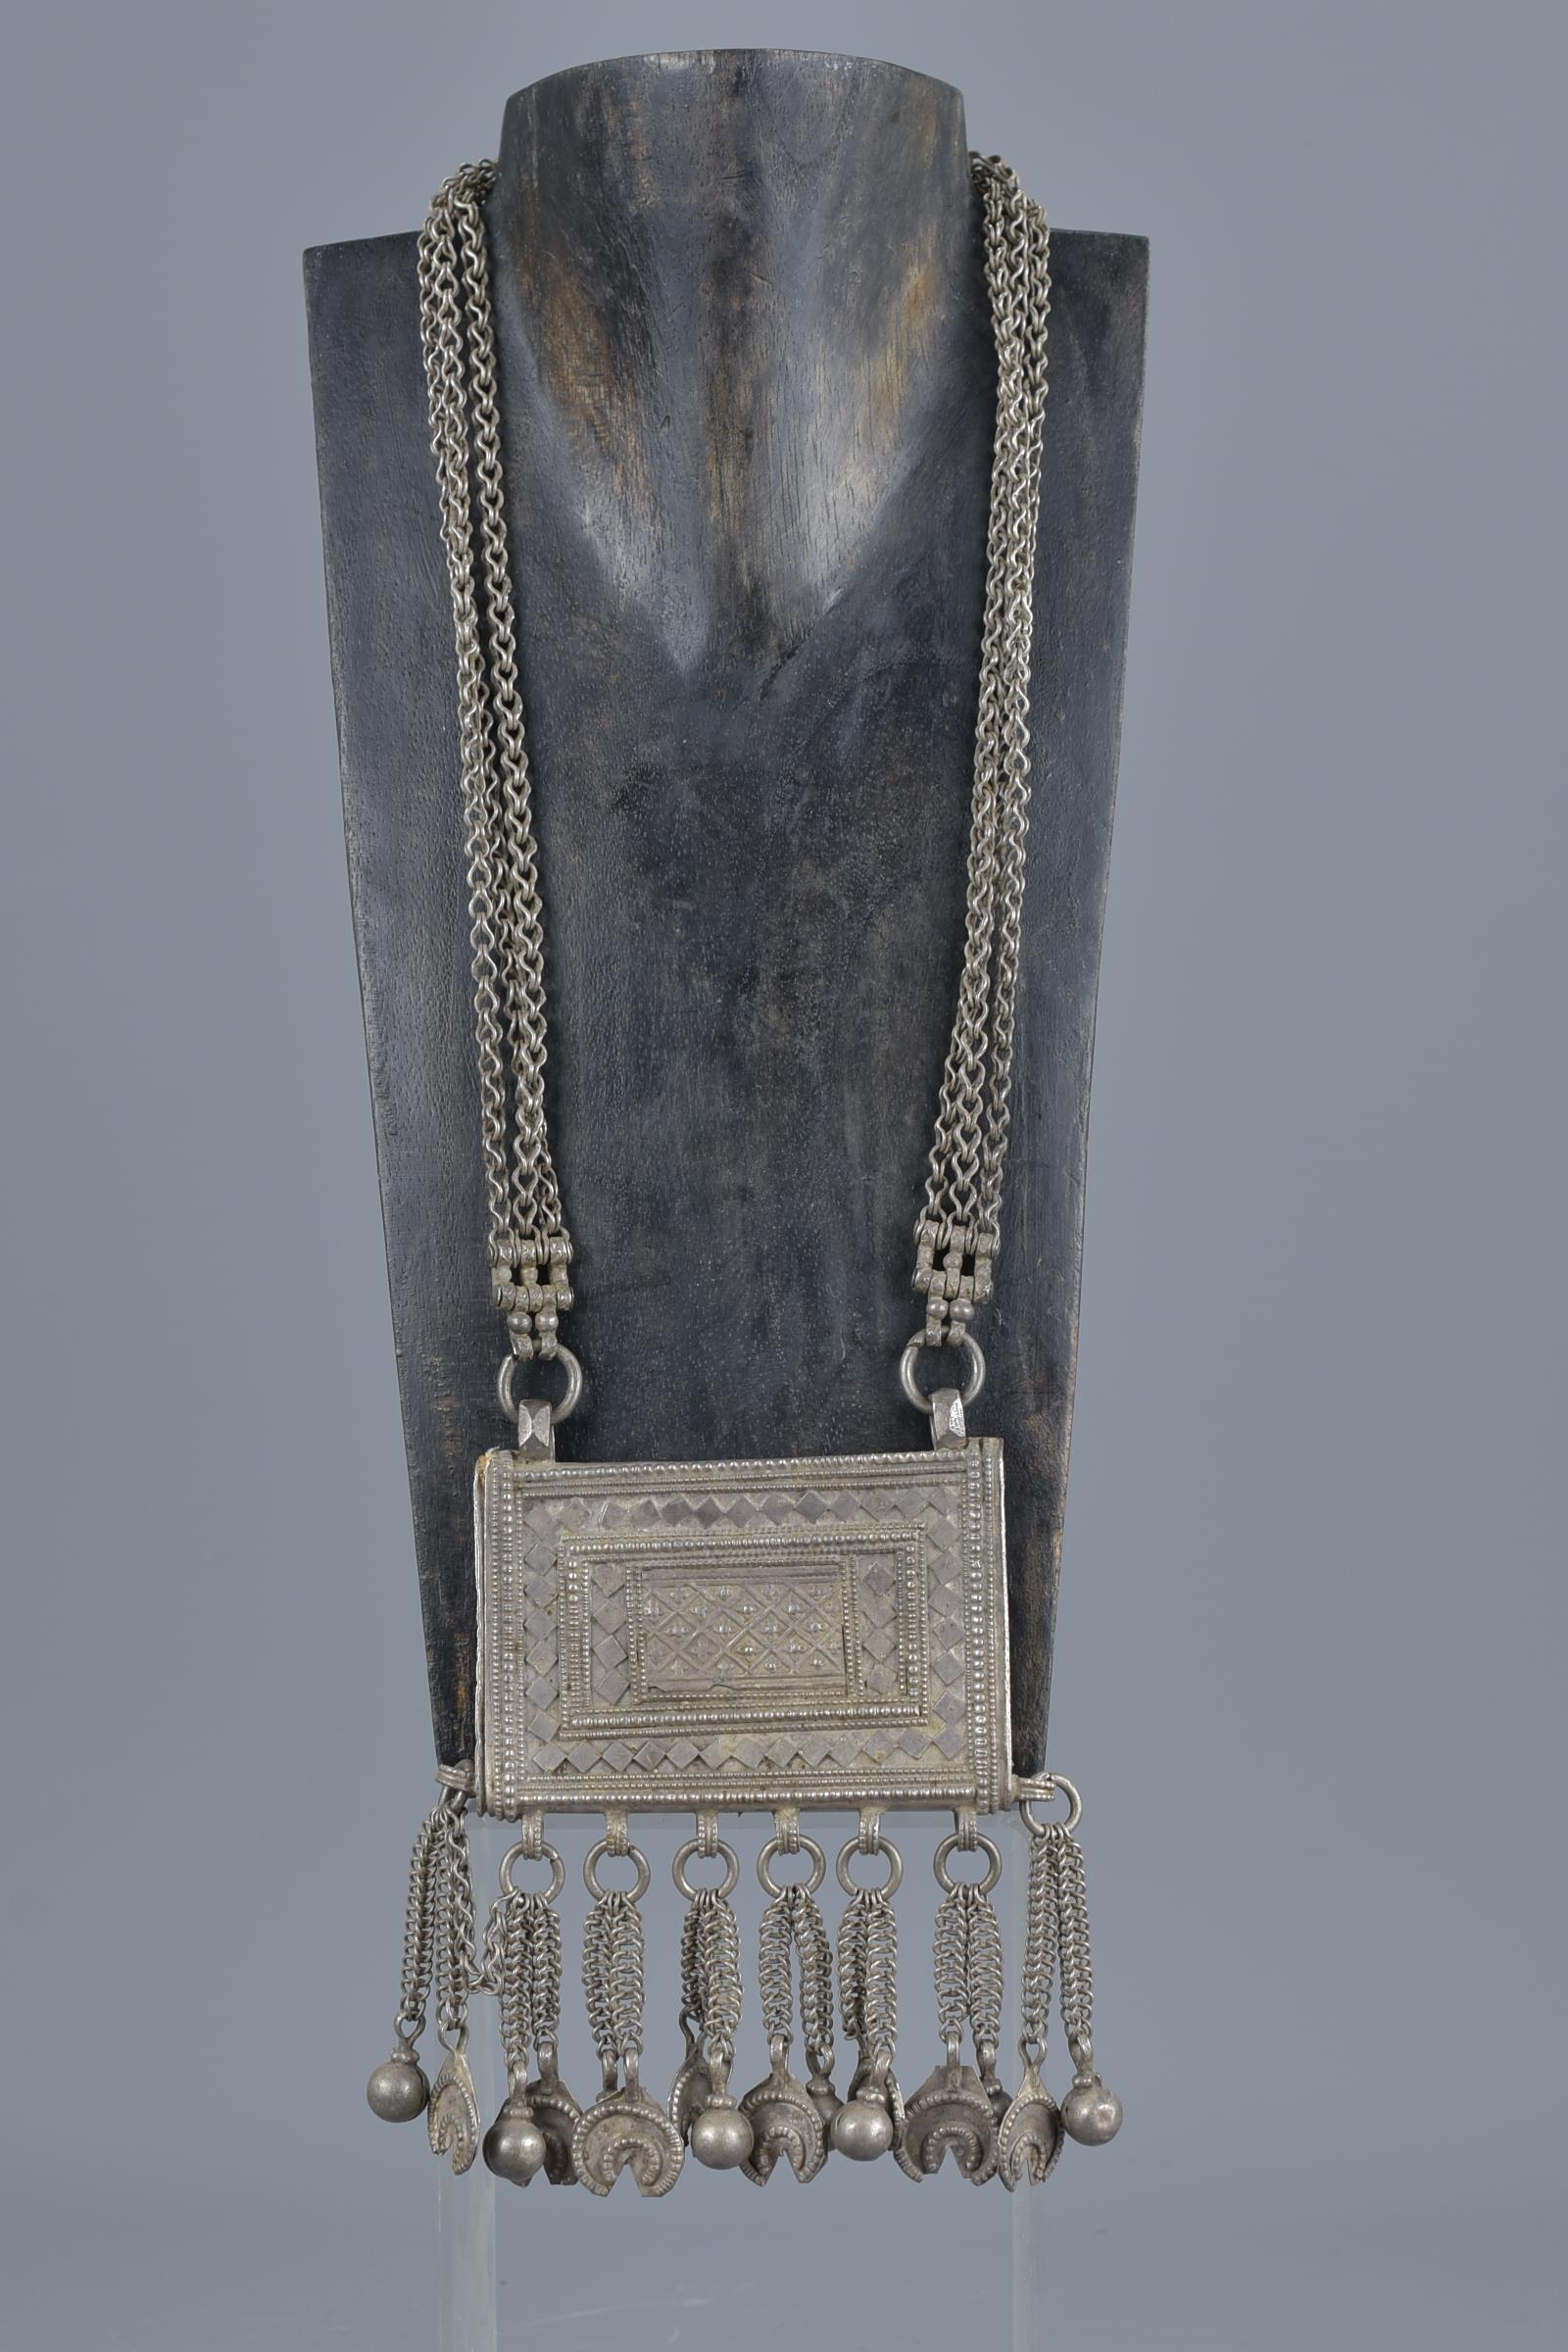 Lot 47 - An Islamic 19th century metal Ottoman prayer box on chain necklace